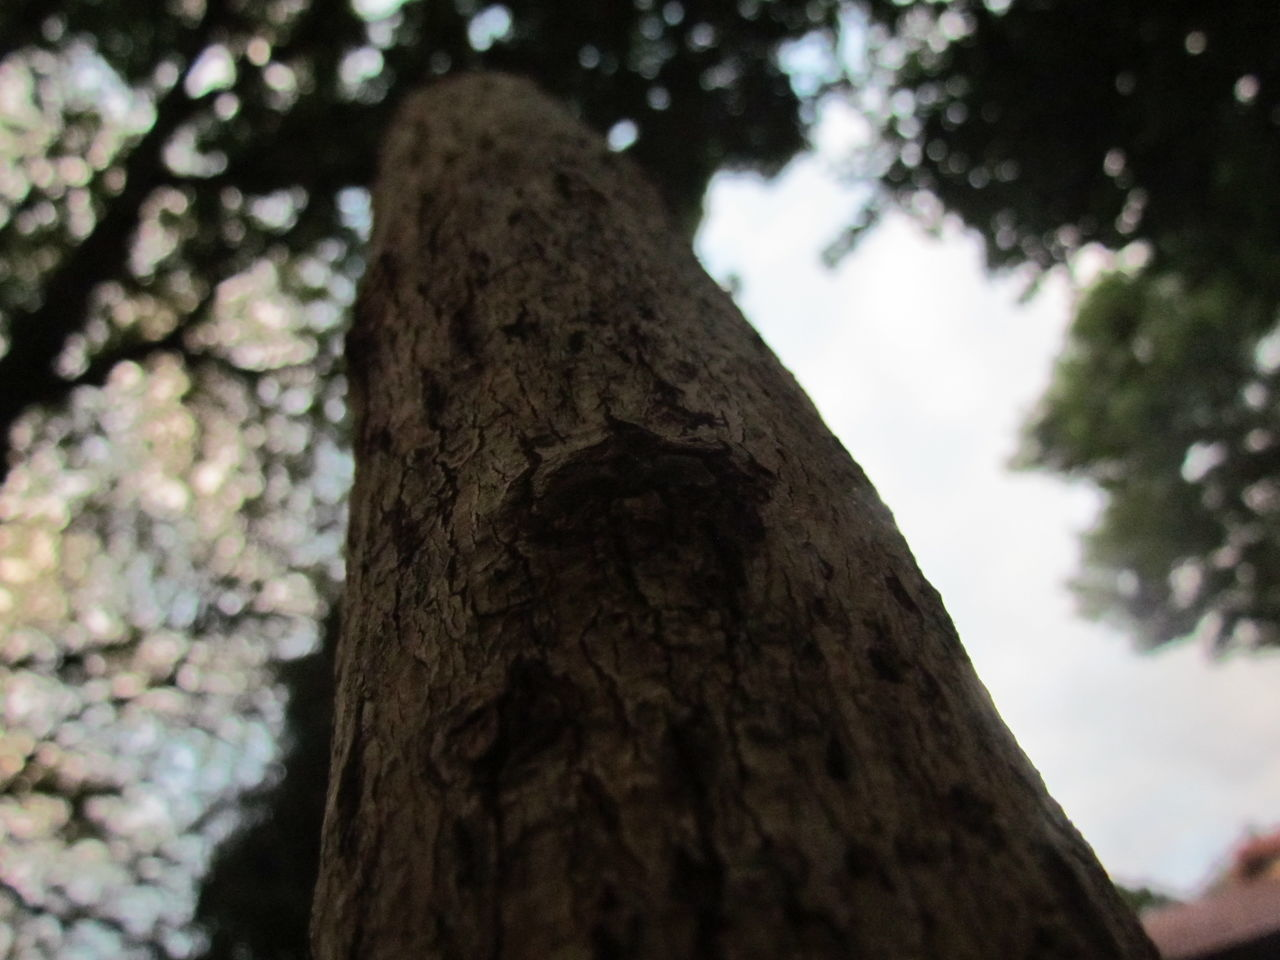 tree trunk, tree, nature, day, bark, focus on foreground, low angle view, no people, trunk, textured, rough, outdoors, close-up, growth, branch, beauty in nature, sky, dead tree